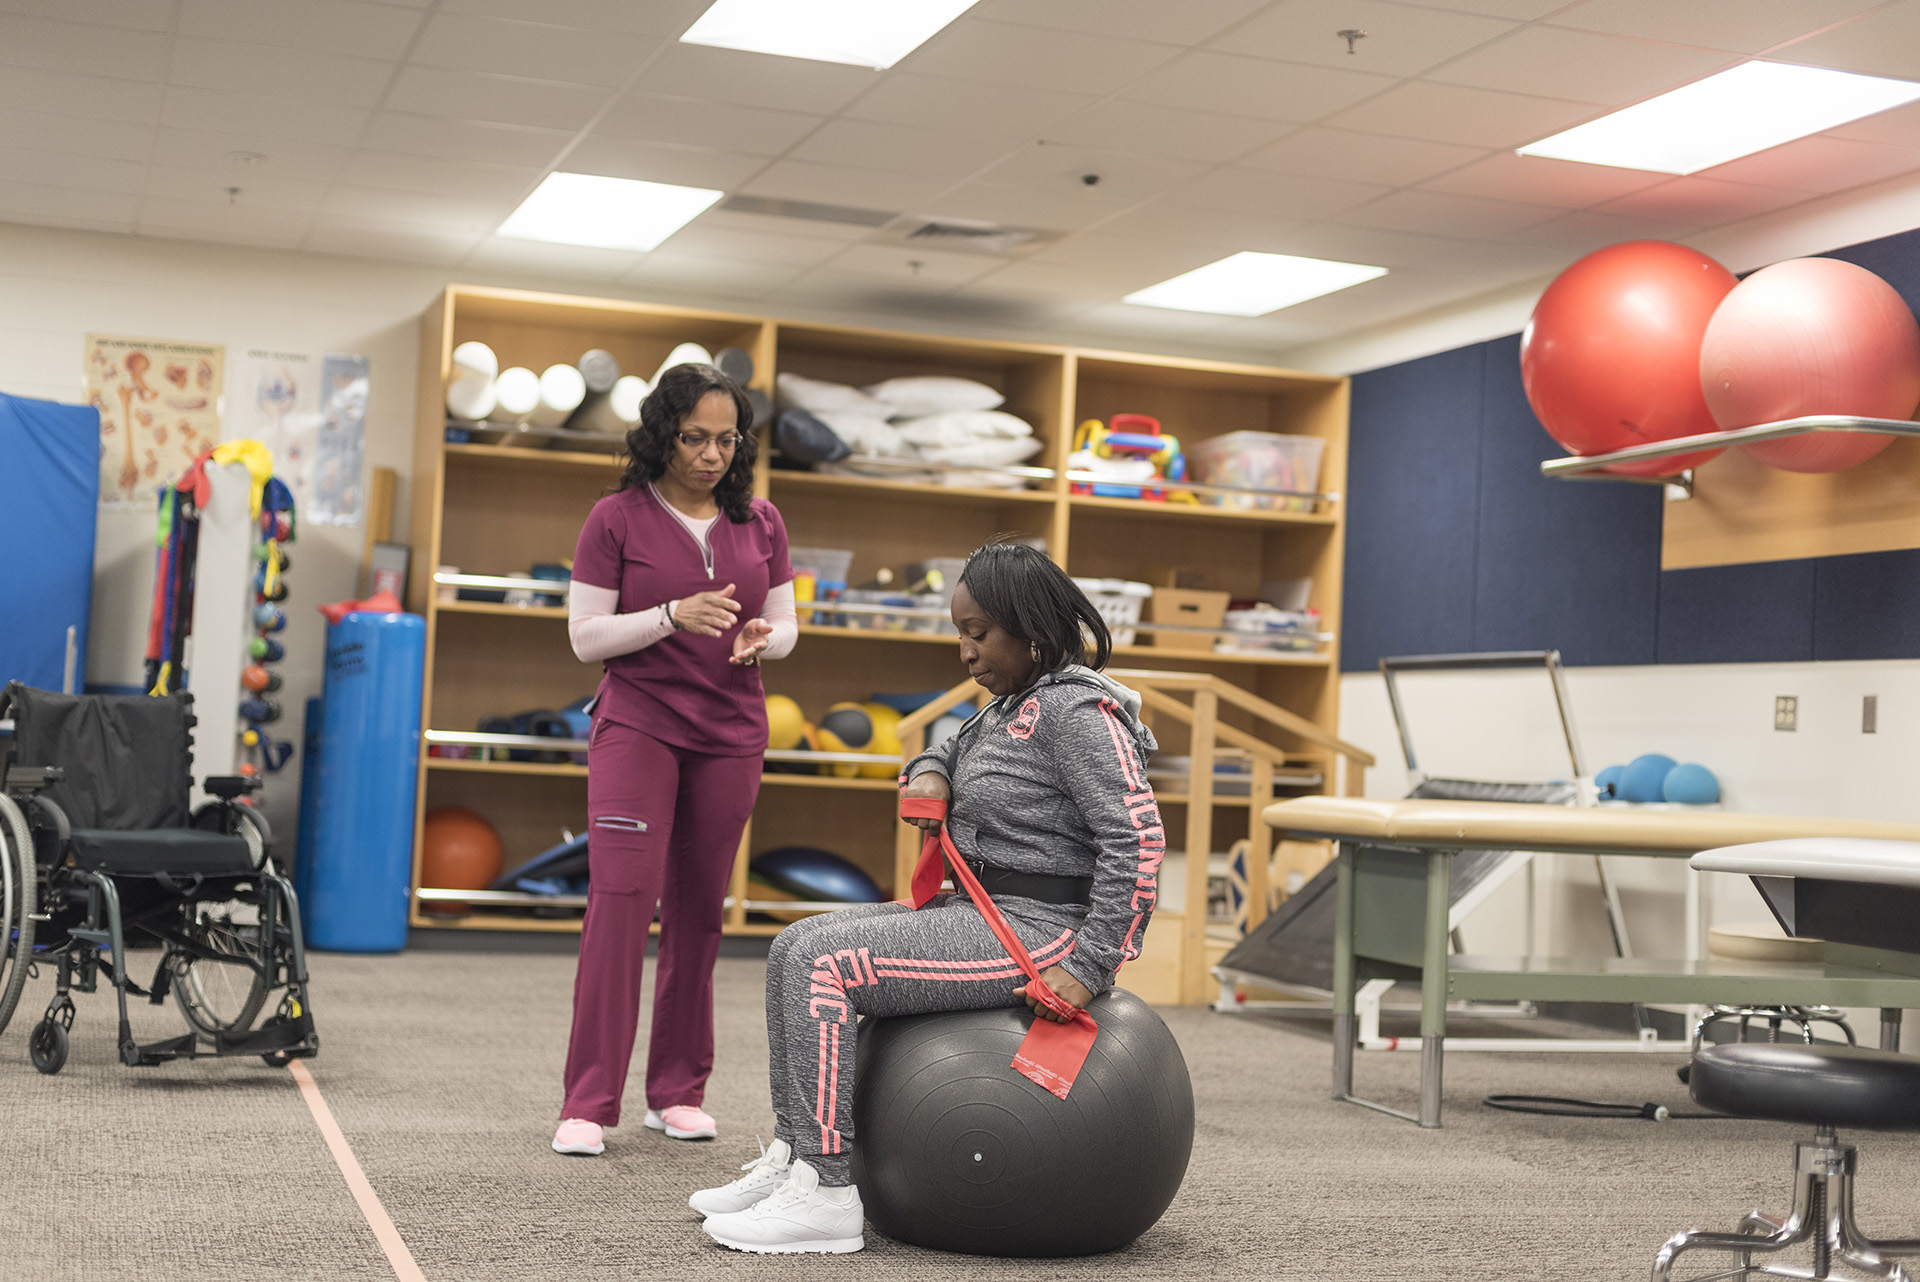 Students in the physical therapist assistant program have their own lab space.